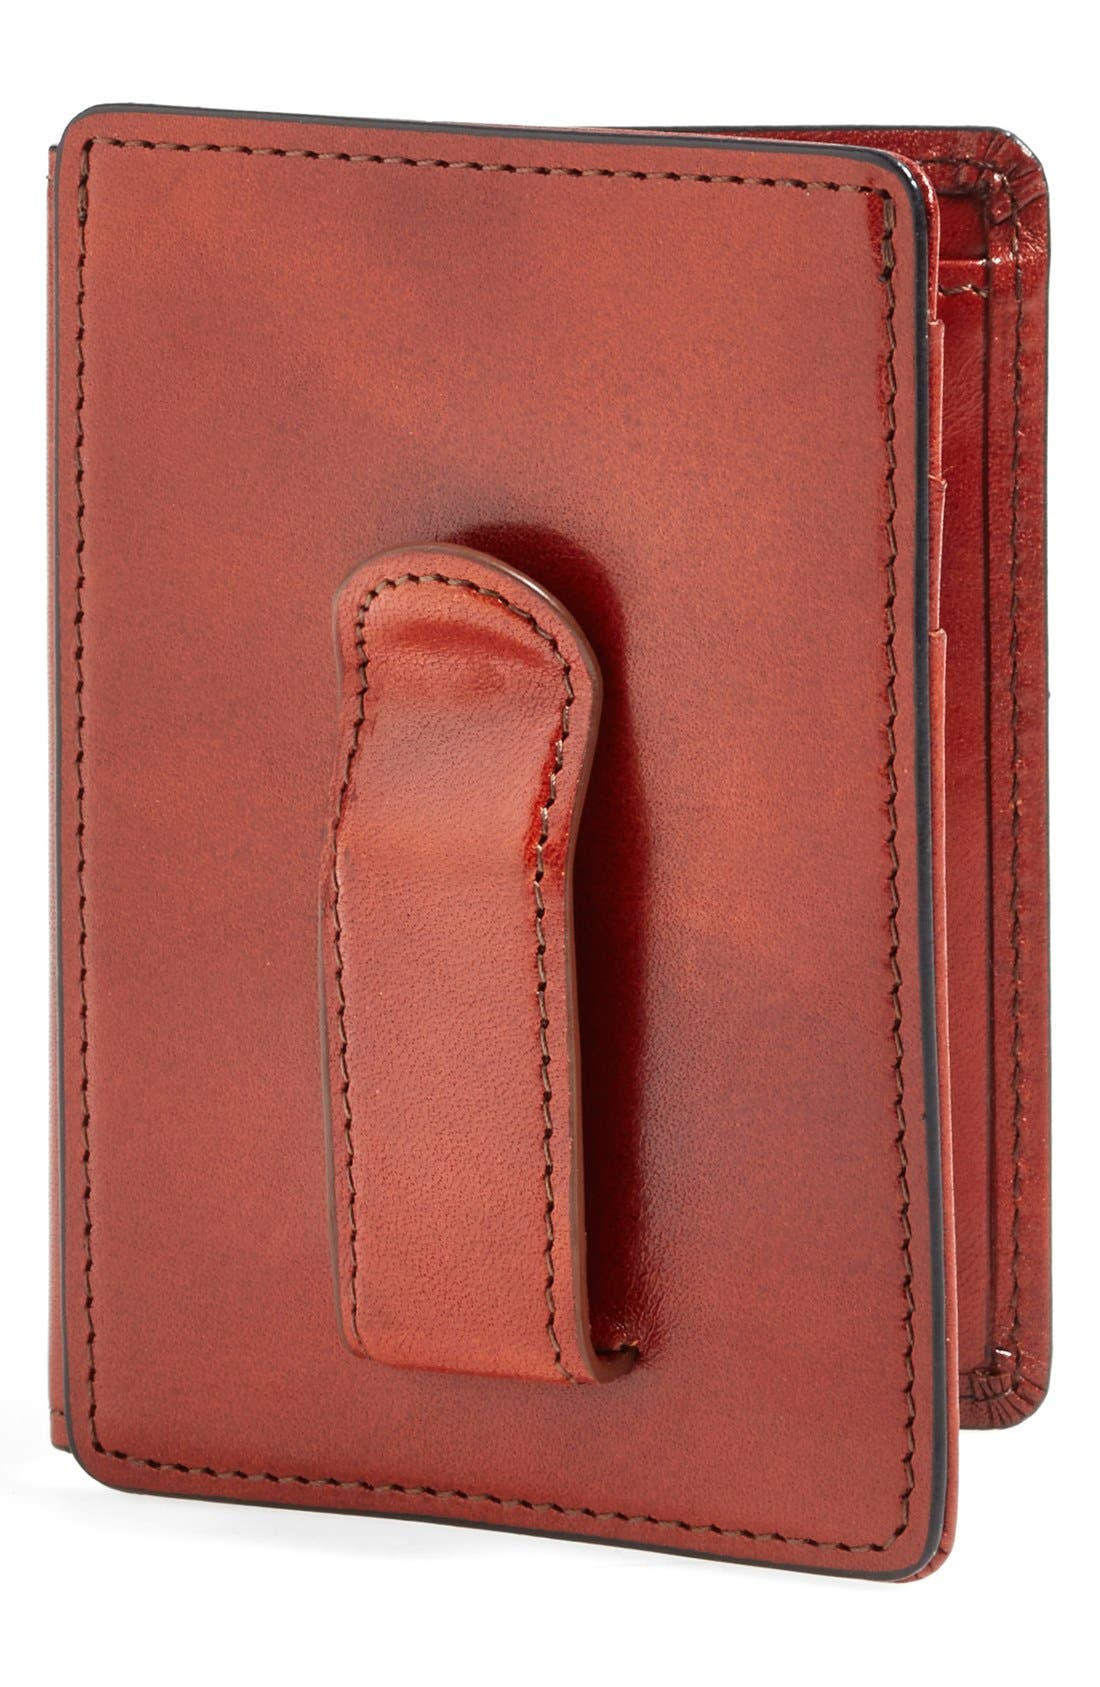 'Old Leather' Front Pocket ID Wallet,                         Main,                         color, COGNAC